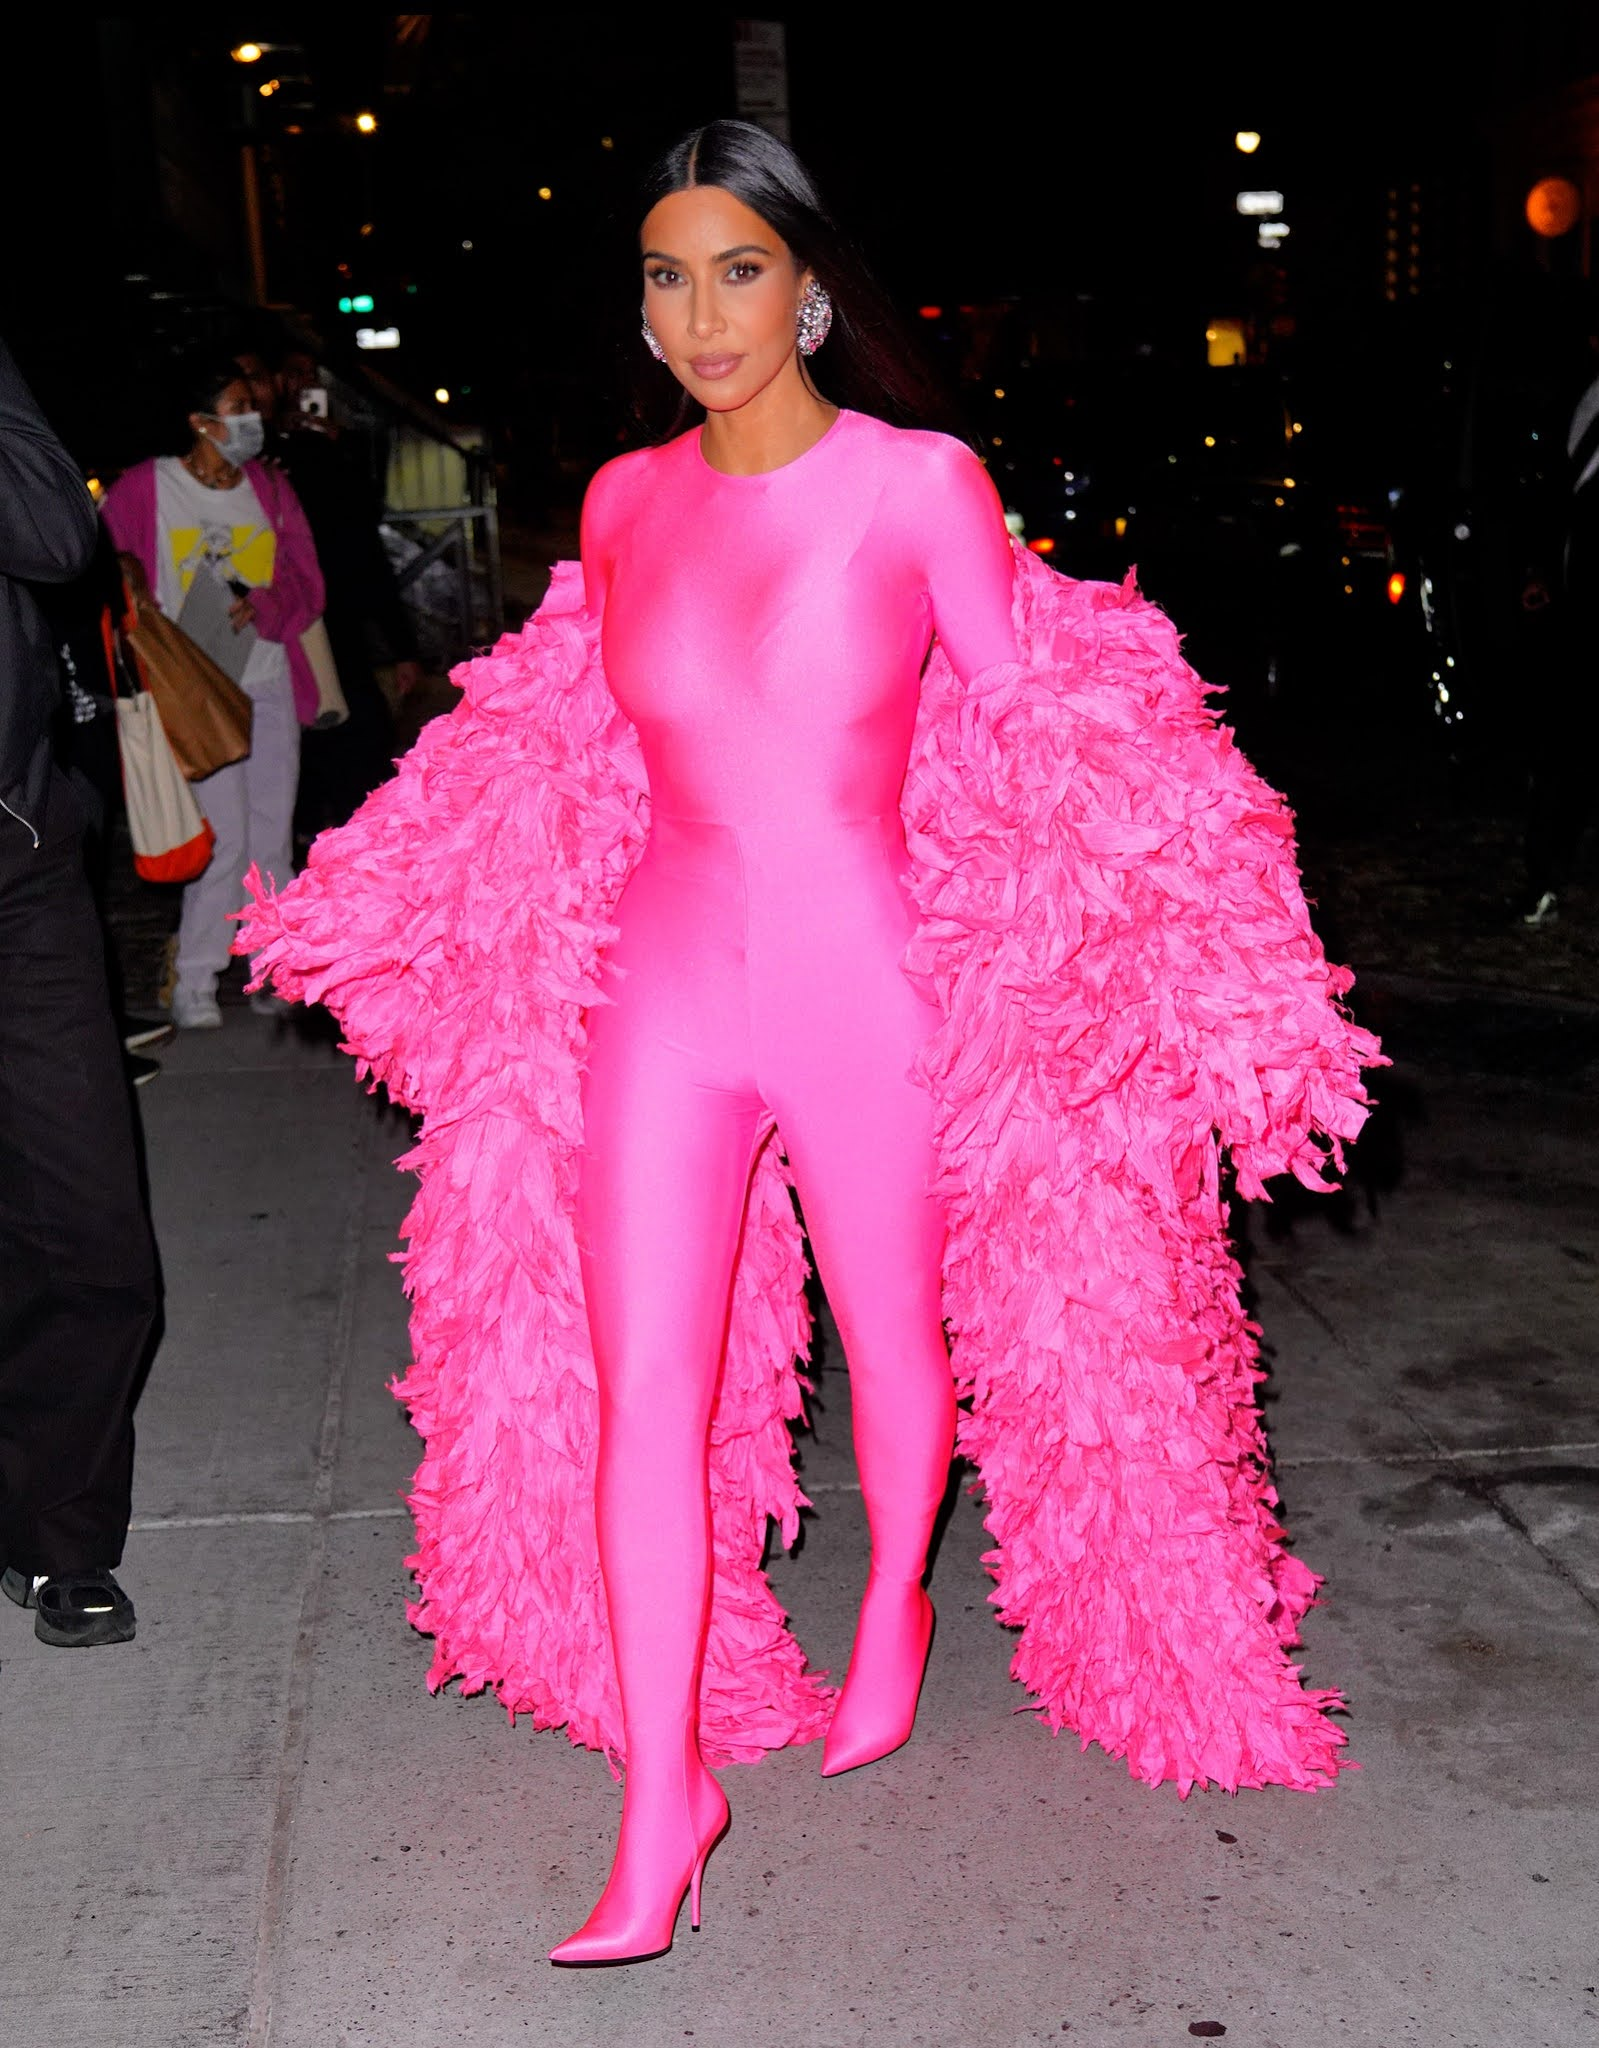 Kim Kardashian puts on eye-popping display in a skintight pink spandex catsuit and matching ruffled cloak as she heads to the SNL afterparty following first-ever hosting gig